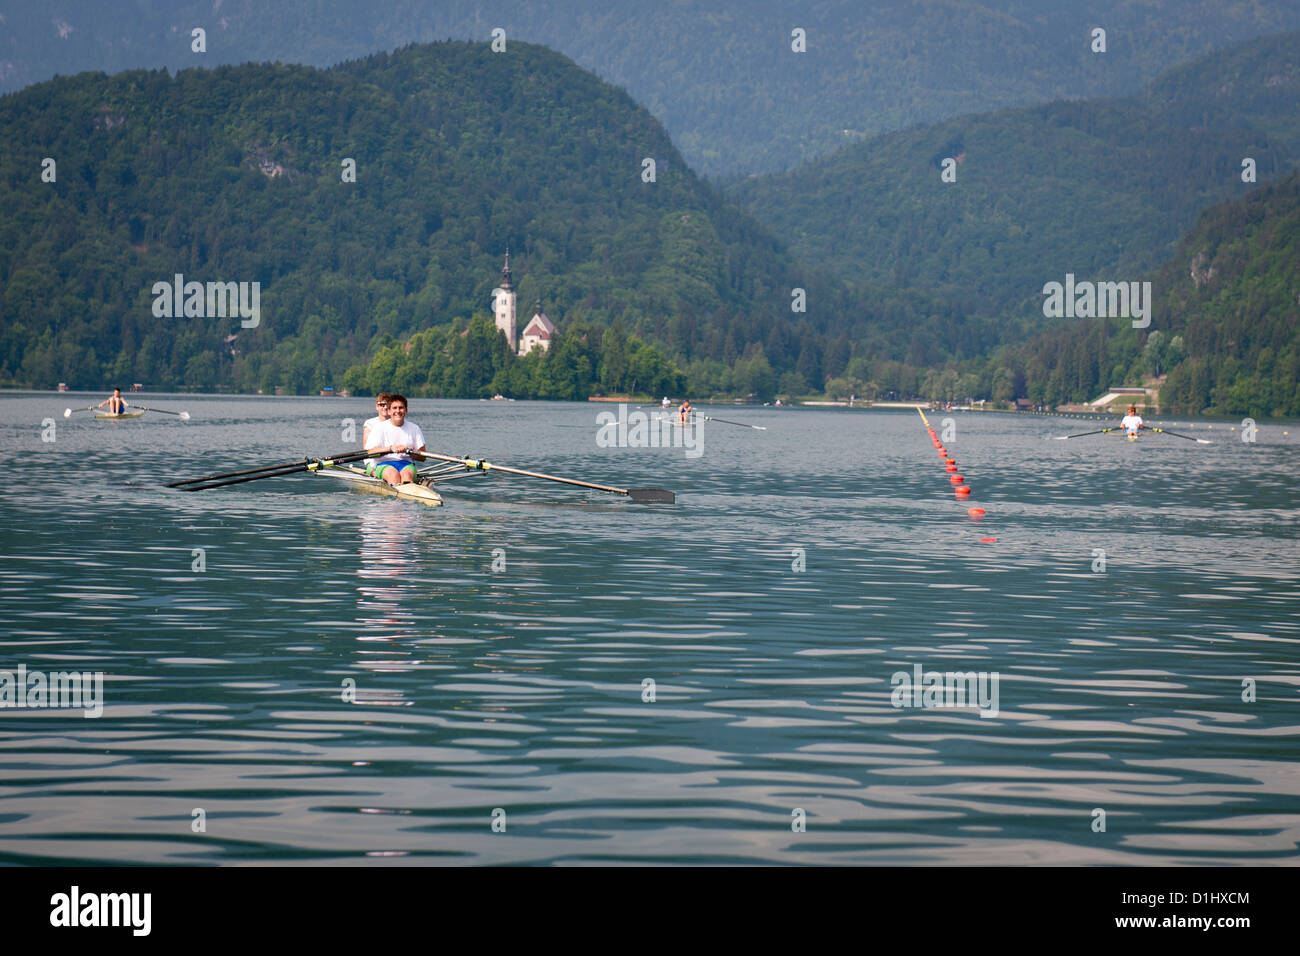 Lake Bled rowing course and the Church of the Assumption of Mary, Bled island, Slovenia - Stock Image